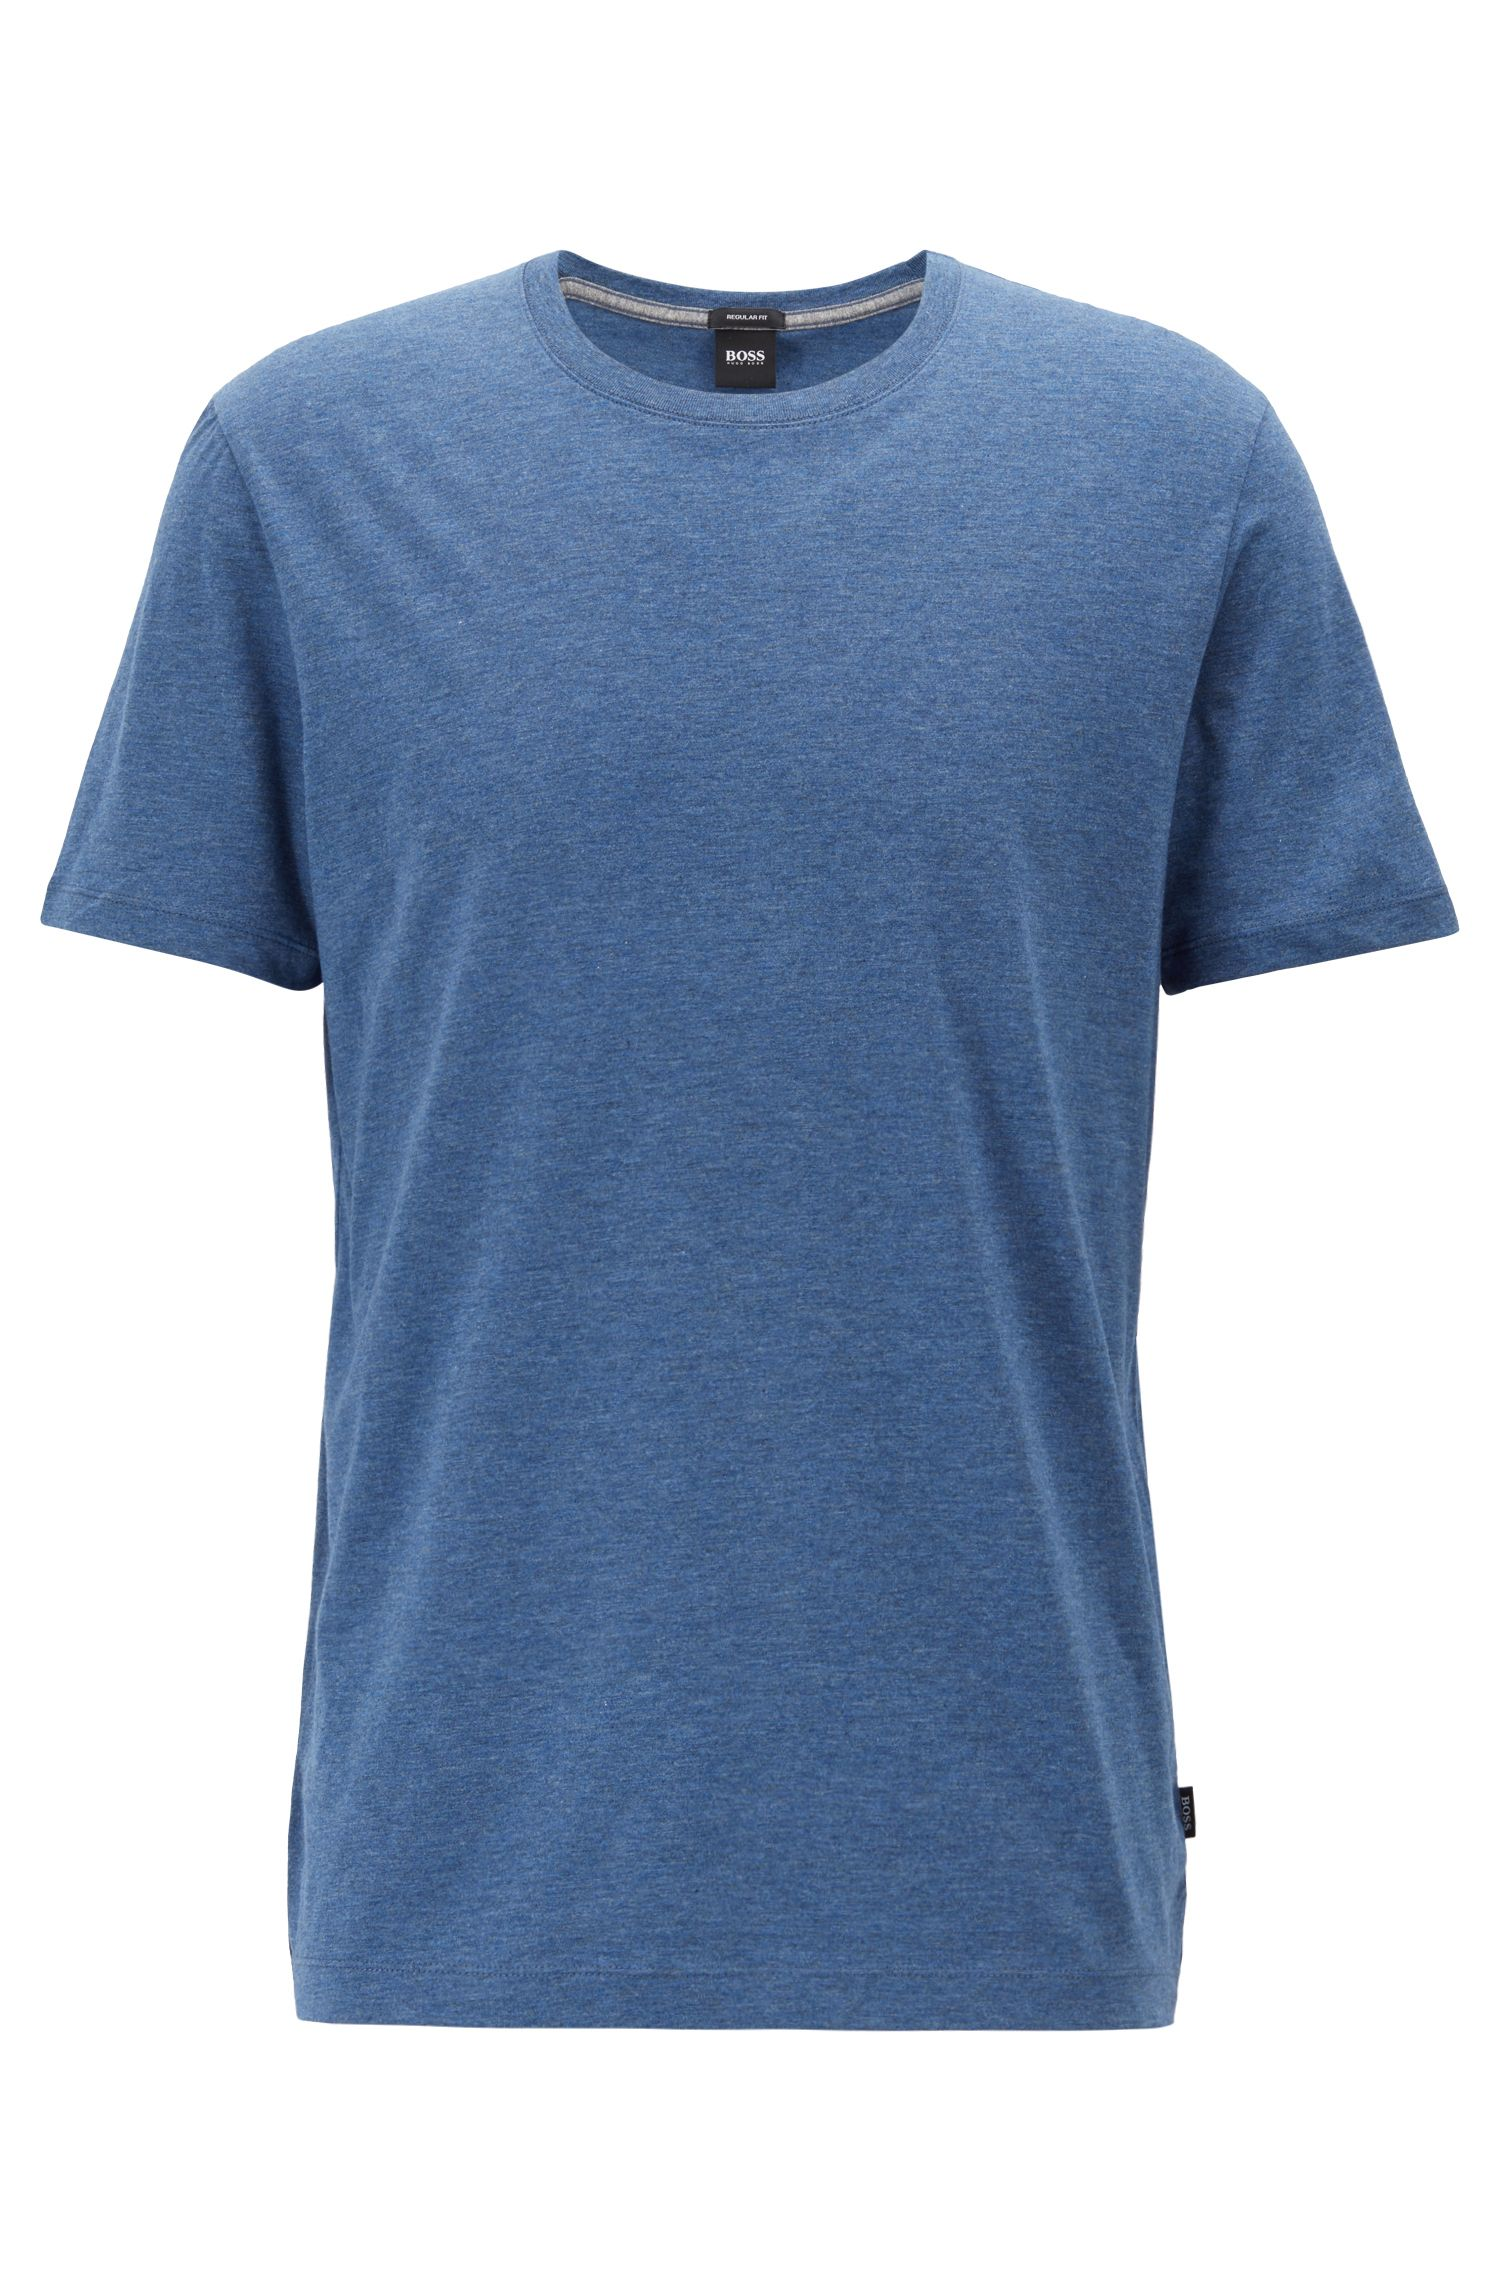 Regular-fit T-shirt in soft cotton, Open Blue